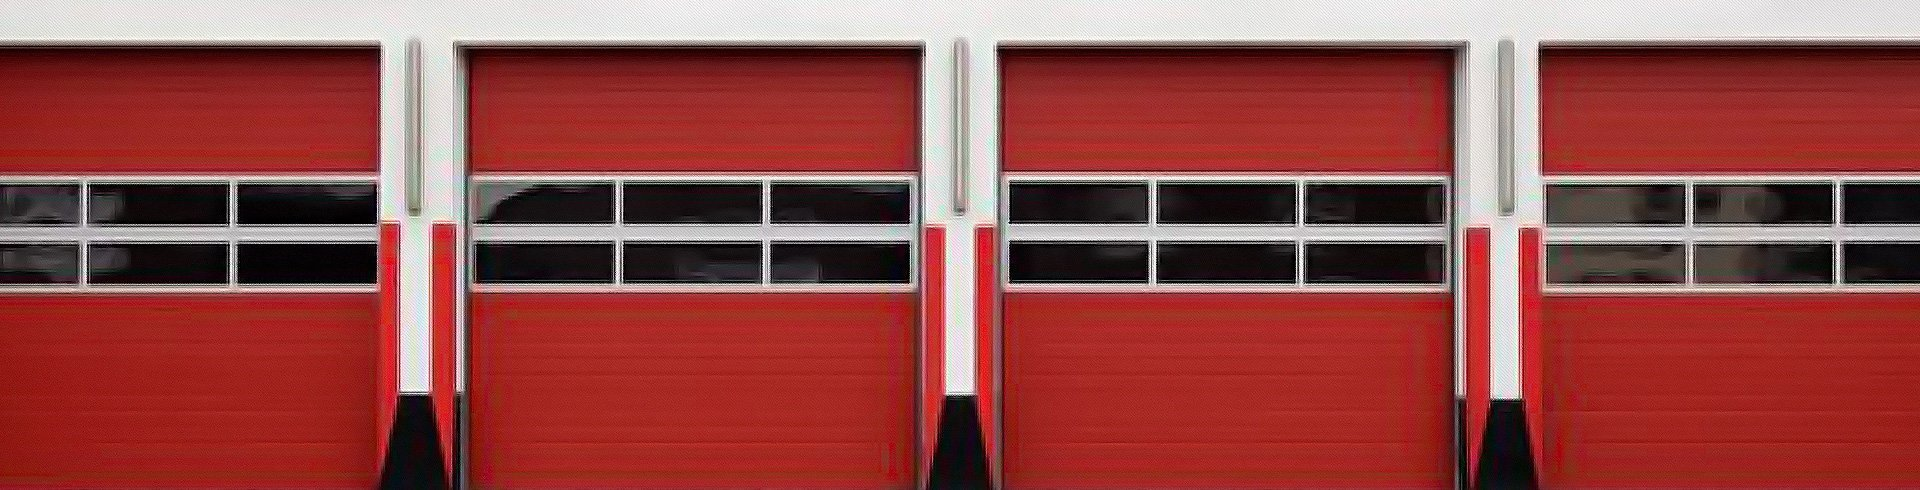 Red garage door